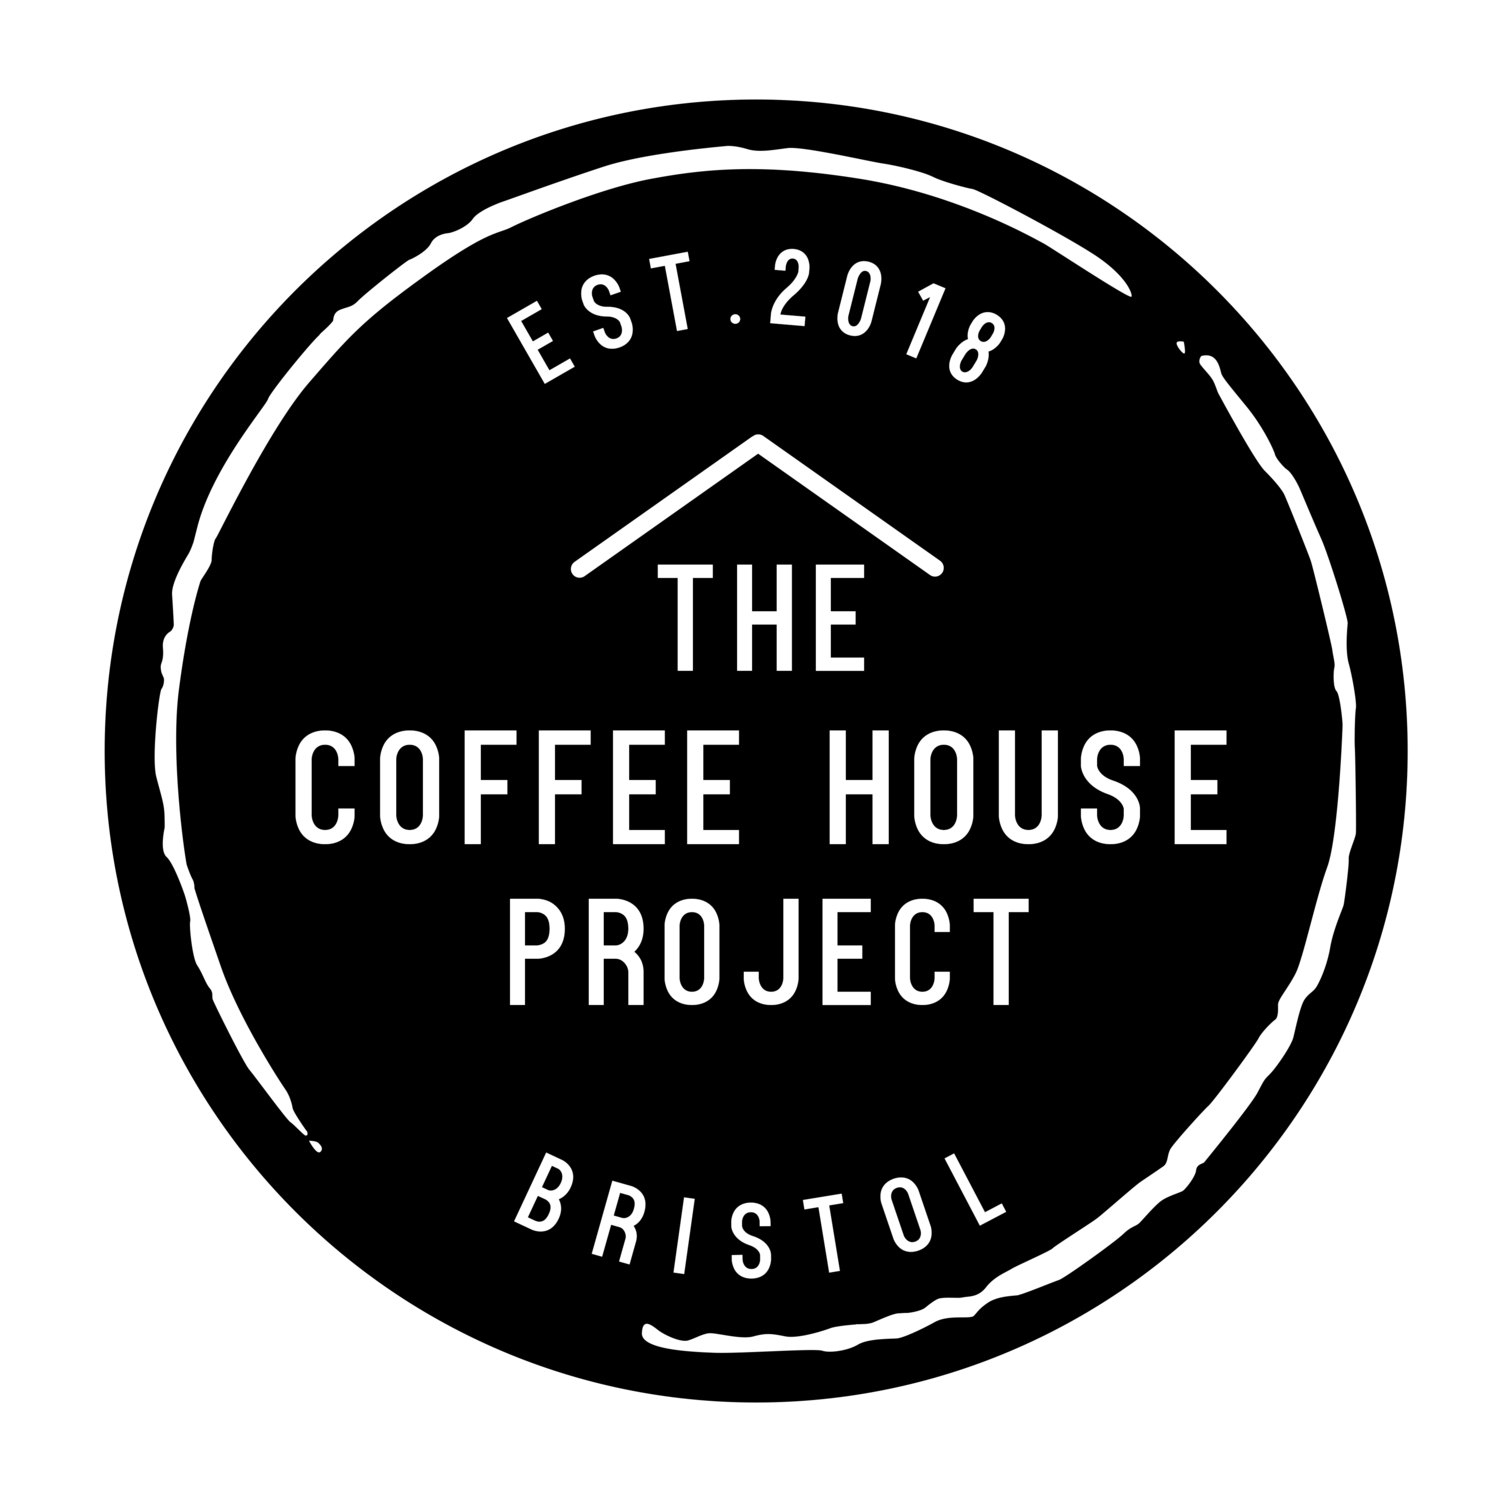 The Coffee House Project Bristol